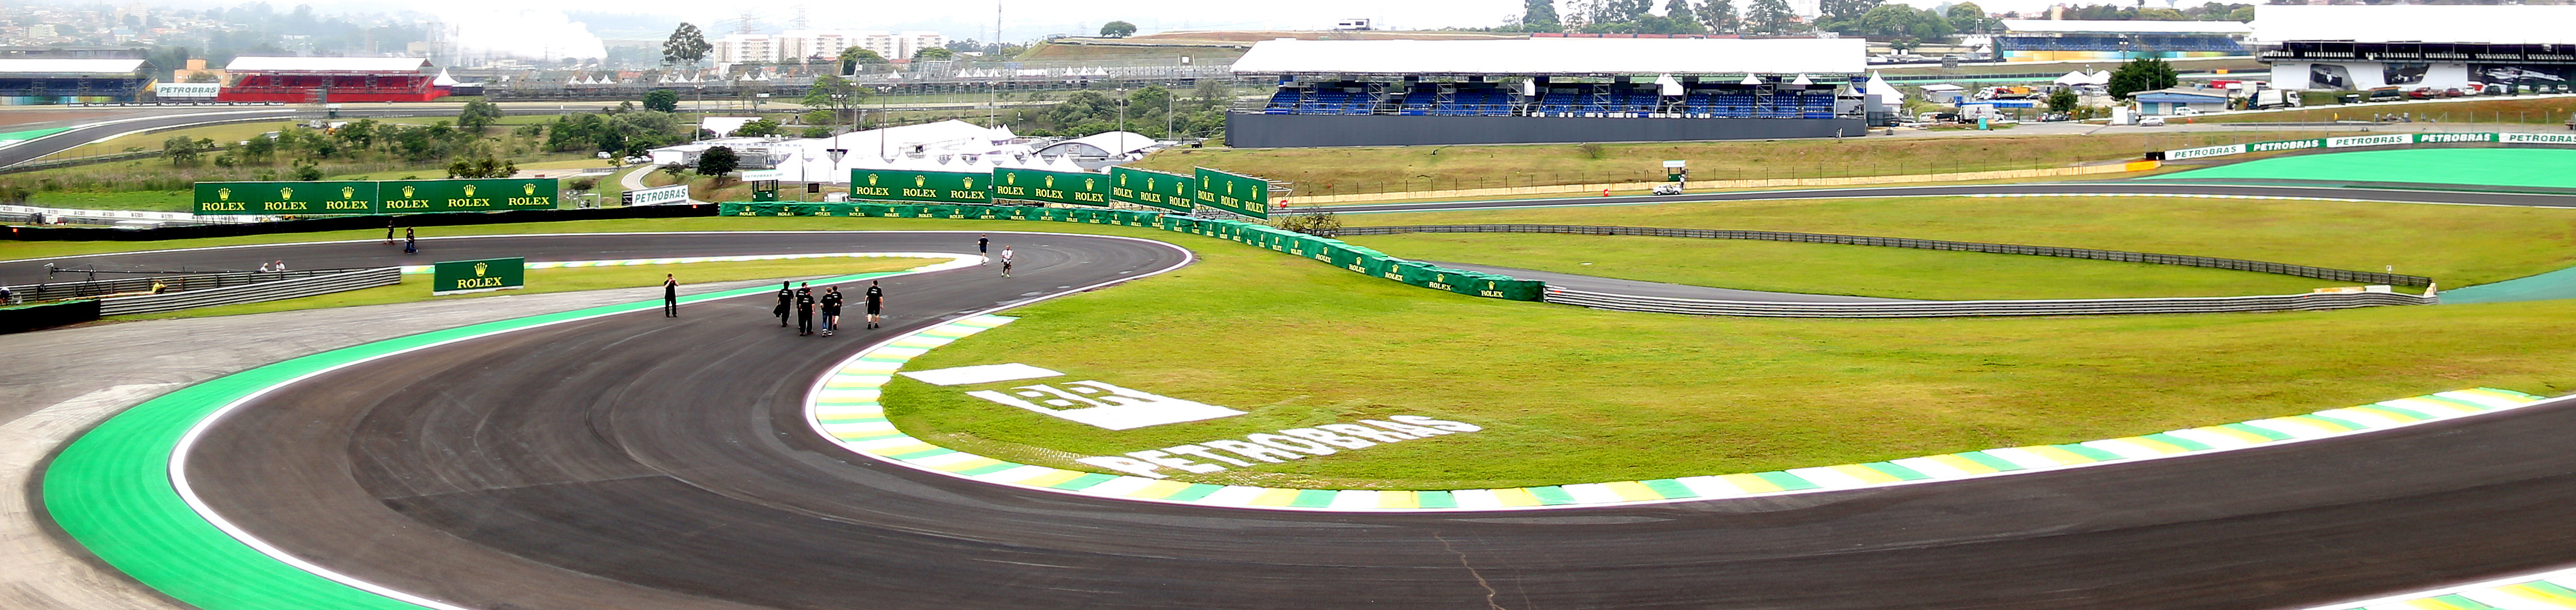 F1 Circuits And Calendar For The 2019 Gp Season Bwin Your Circuit Should Be Laid Out In A Similar Way To Nice Feature Of Is Wide Corners They Encourage Drivers Follow Multiple Racing Lines Which Makes Exciting Overtaking Battles